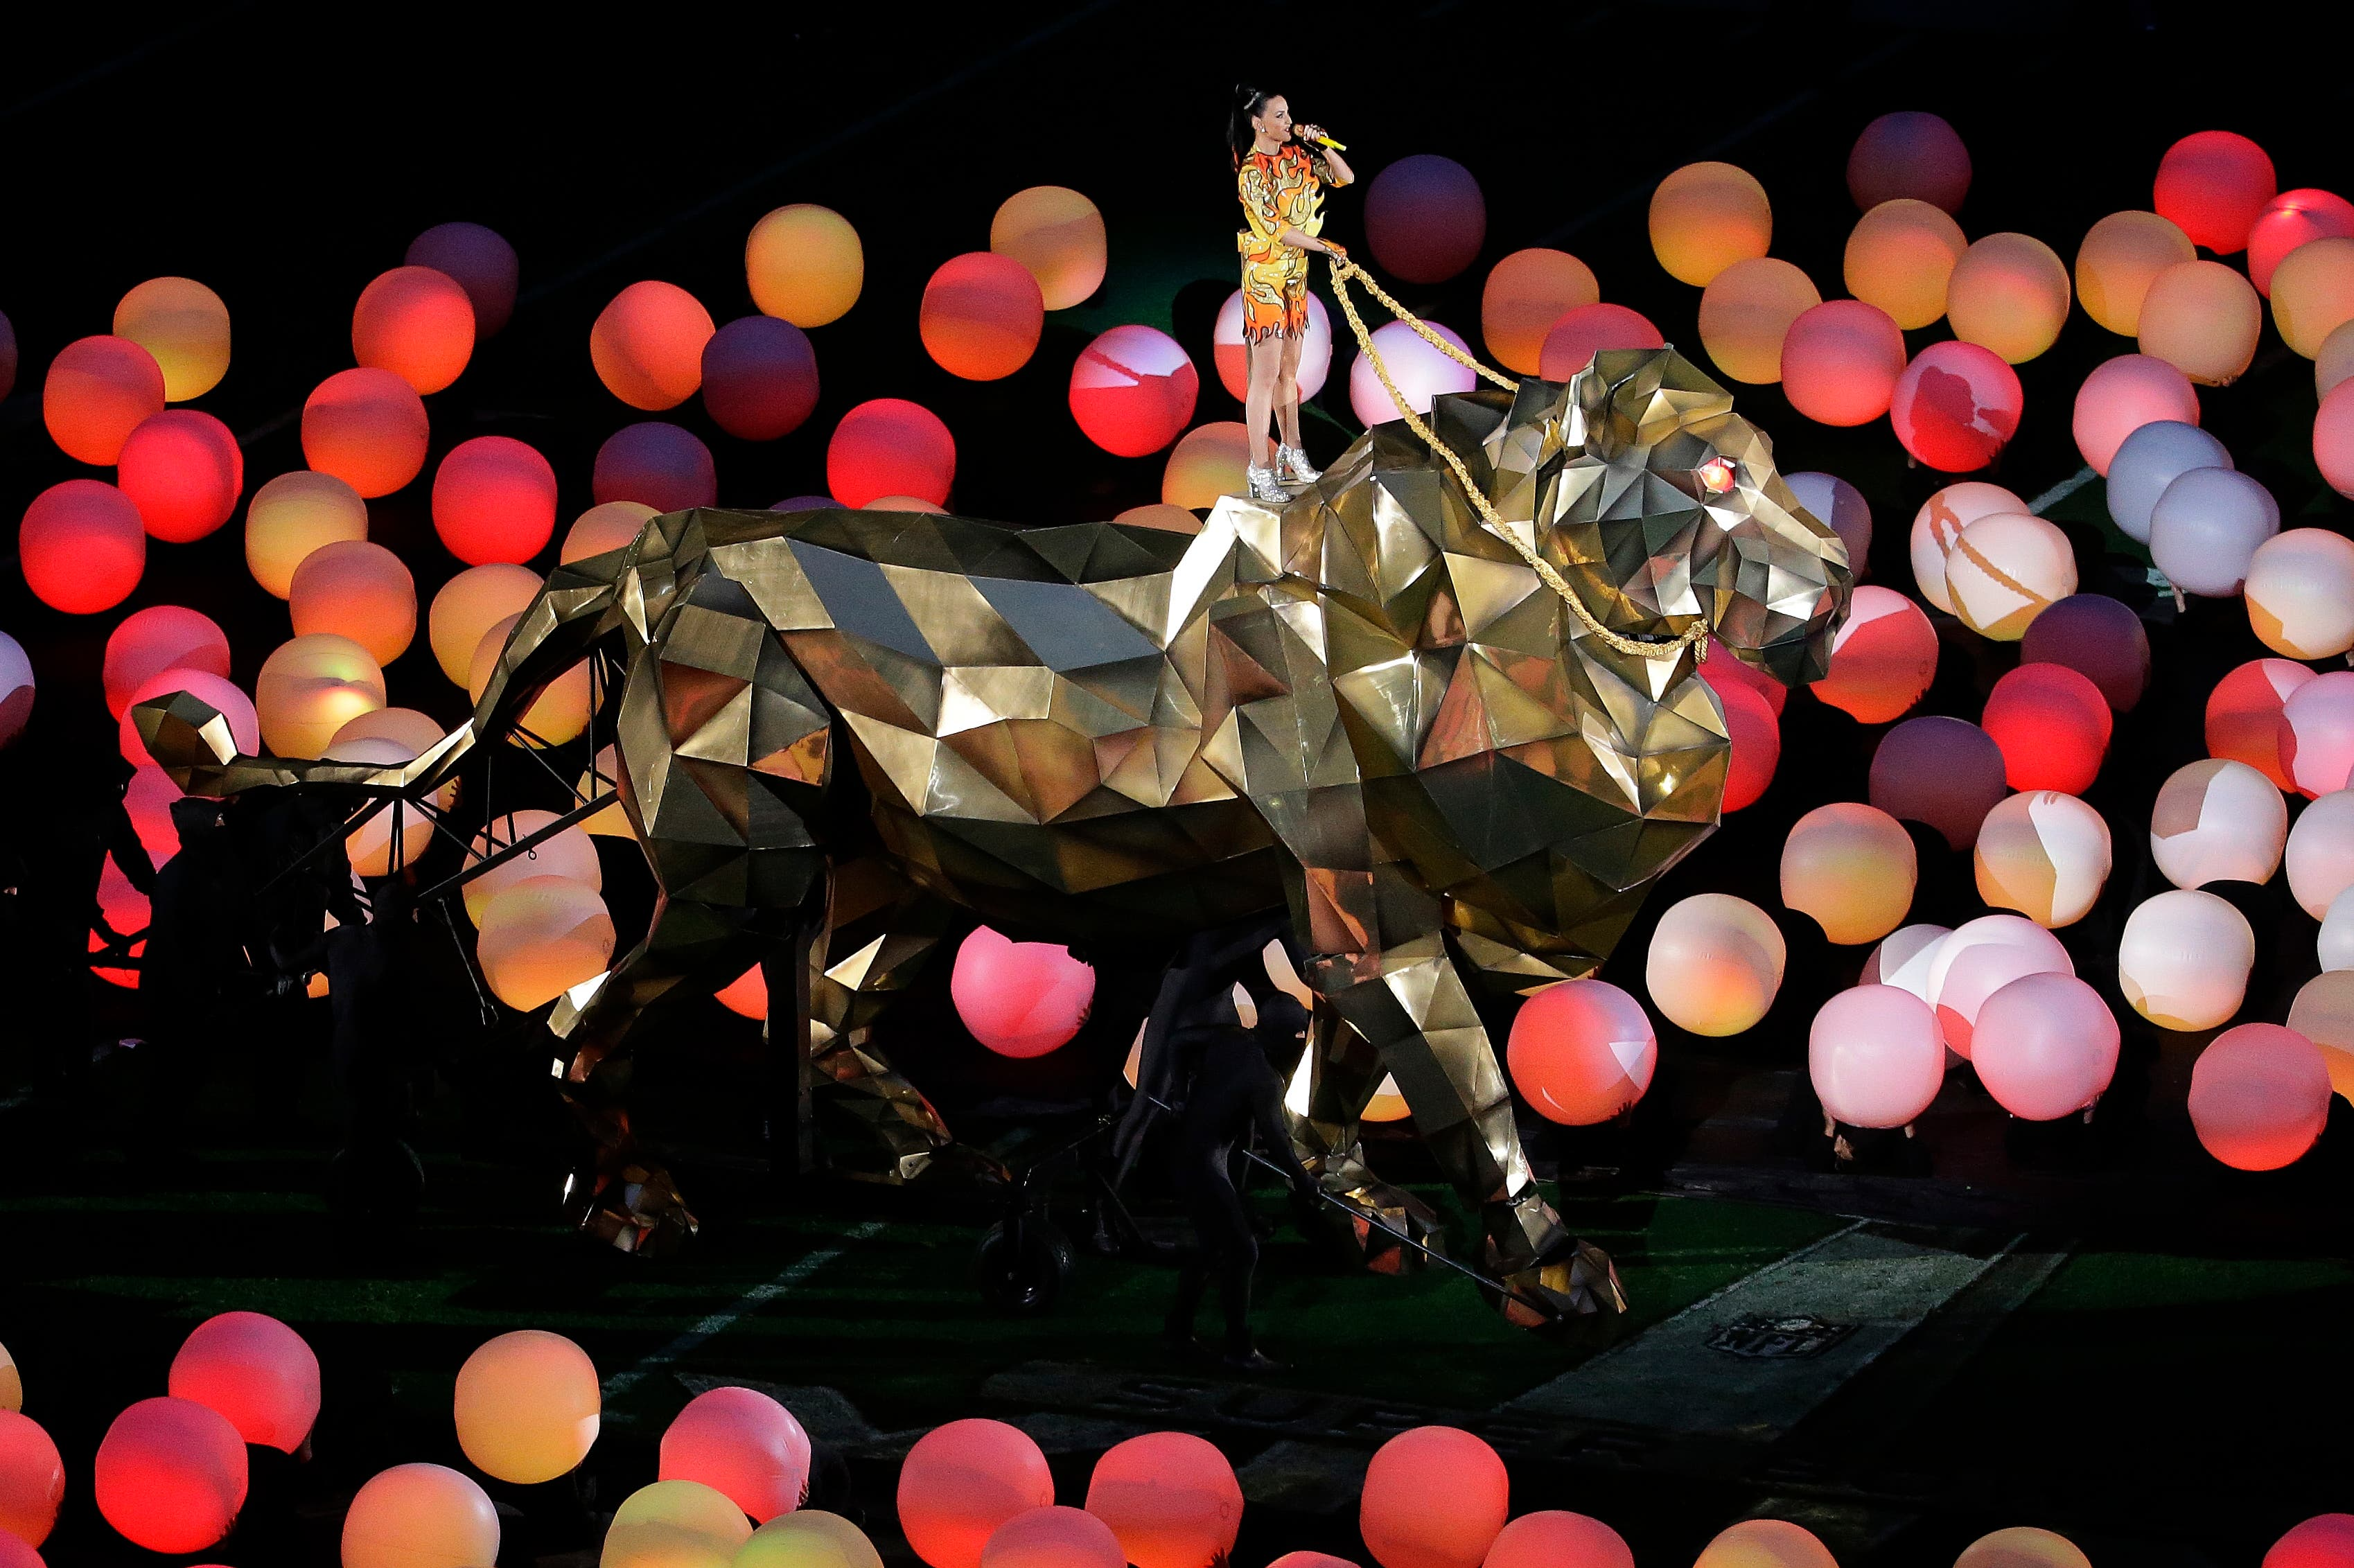 Katy Perry performs during halftime of NFL Super Bowl XLIX football game between the Seattle Seahawks and the New England Patriots Sunday, Feb. 1, 2015, in Glendale, Ariz. (AP)